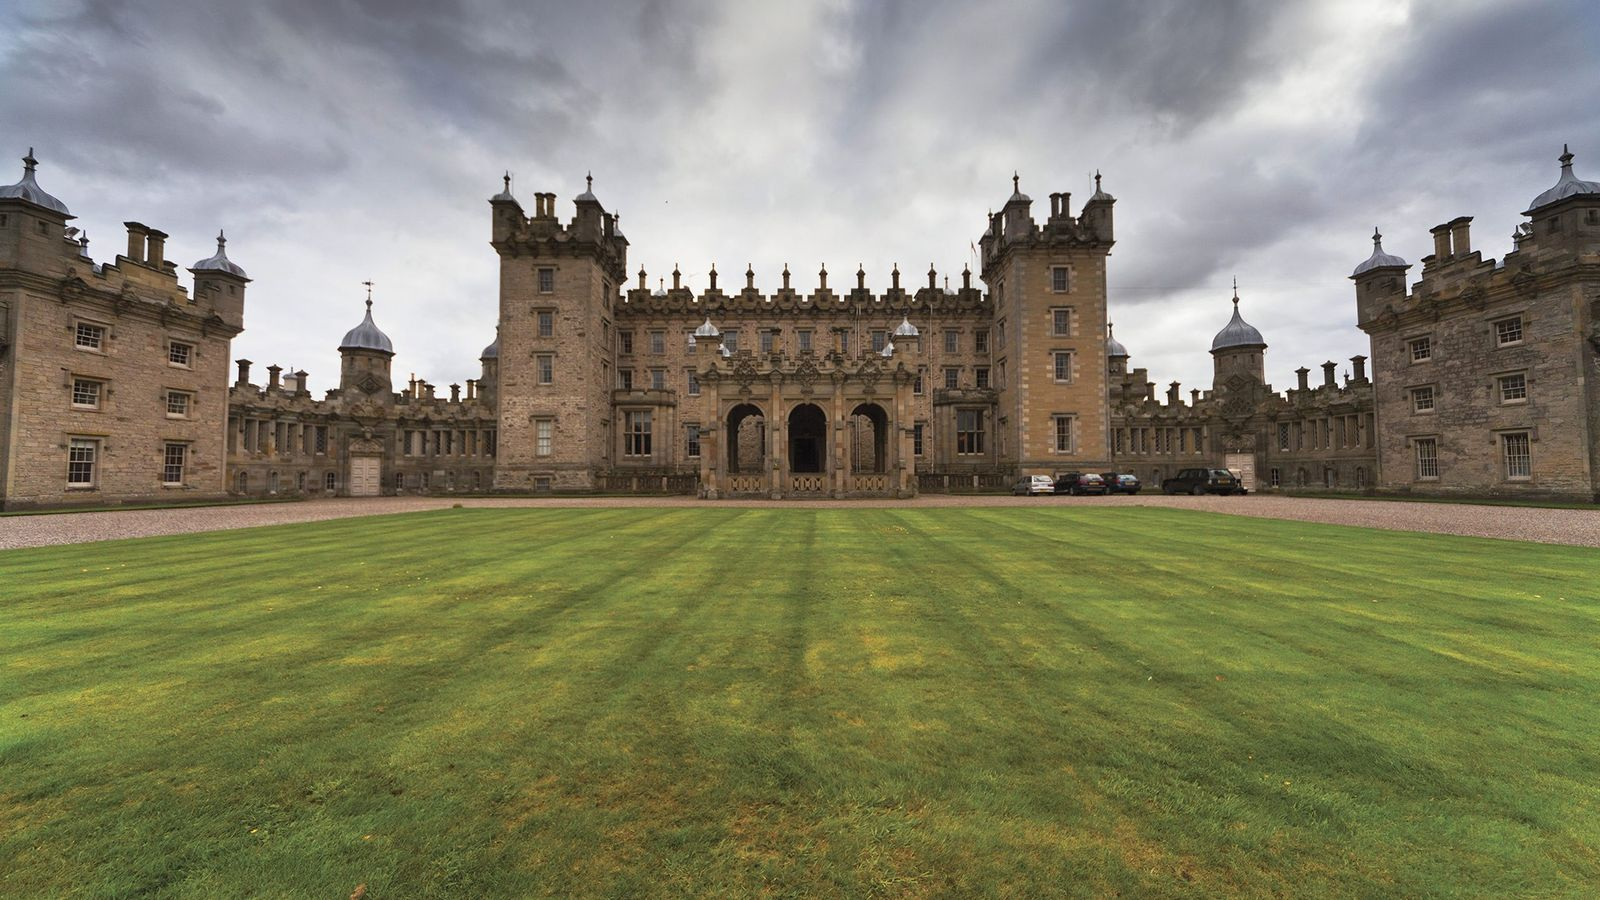 Your whims will be accommodated at the Floors Castle in Scotland.